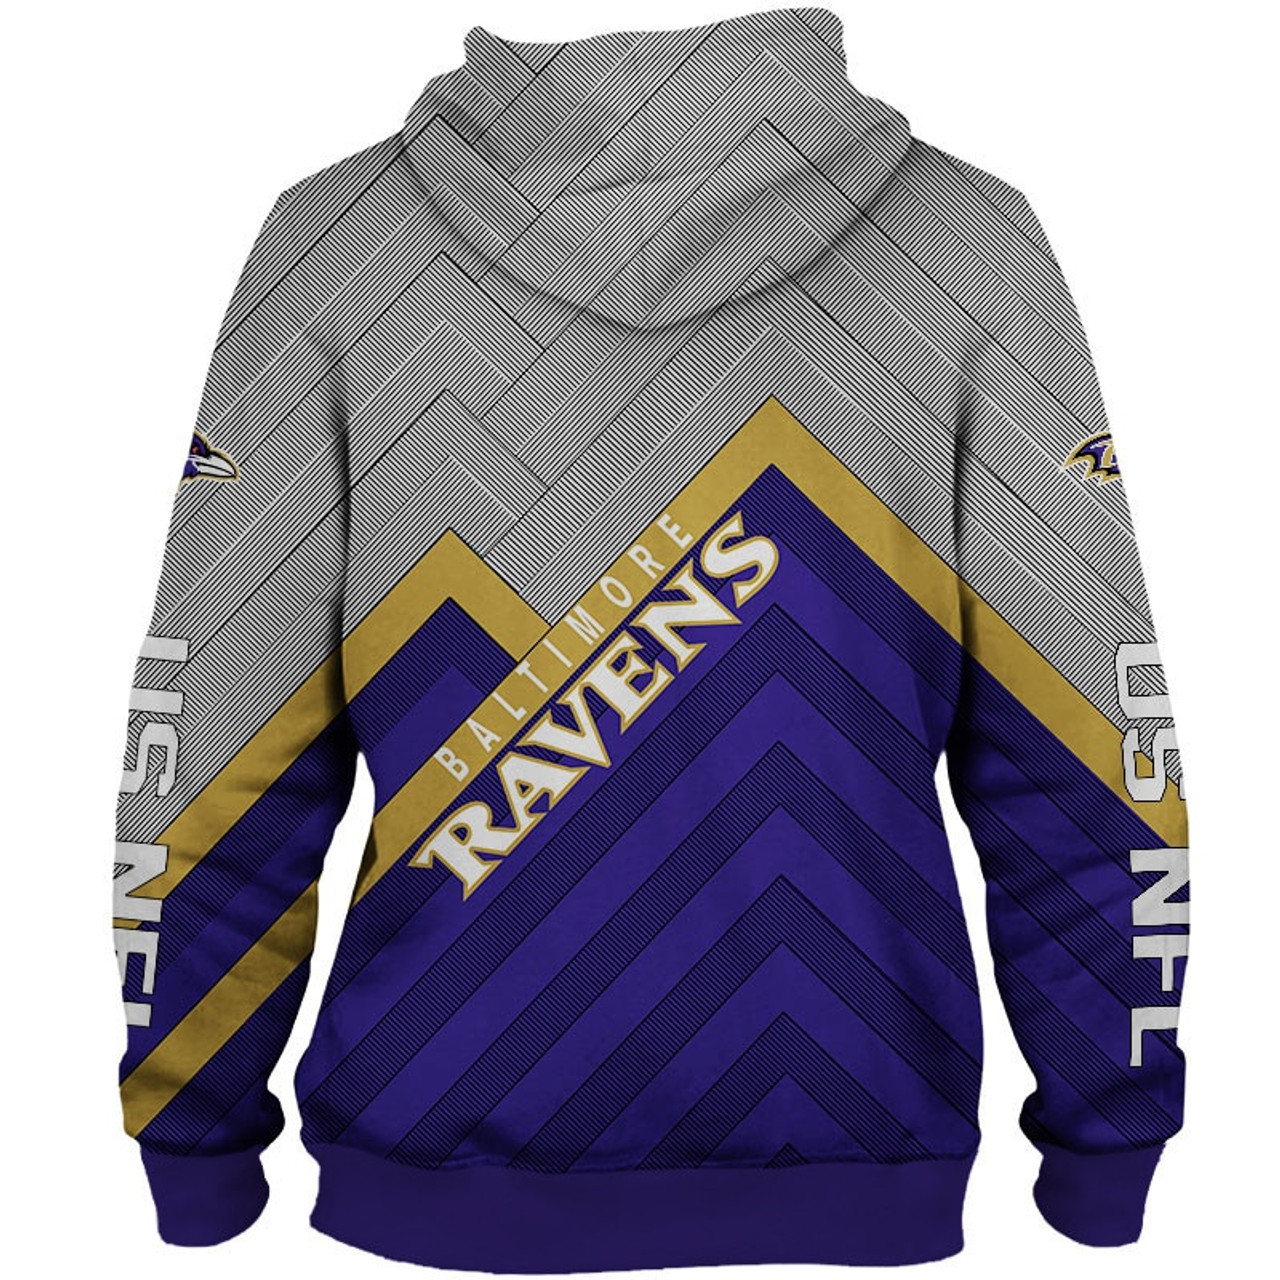 **(NEW-OFFICIAL-N.F.L.BALTIMORE-RAVENS-PULLOVER-HOODIES/3D-CUSTOM-RAVENS-LOGOS & OFFICIAL-RAVENS-TEAM-COLORS/NICE-3D-DETAILED-GRAPHIC-PRINTED-DOUBLE-SIDED/ALL-OVER-ENTIRE-HOODIE-PRINTED-DESIGN/TRENDY-WARM-PREMIUM-RAVENS-PULLOVER-HOODIES)**